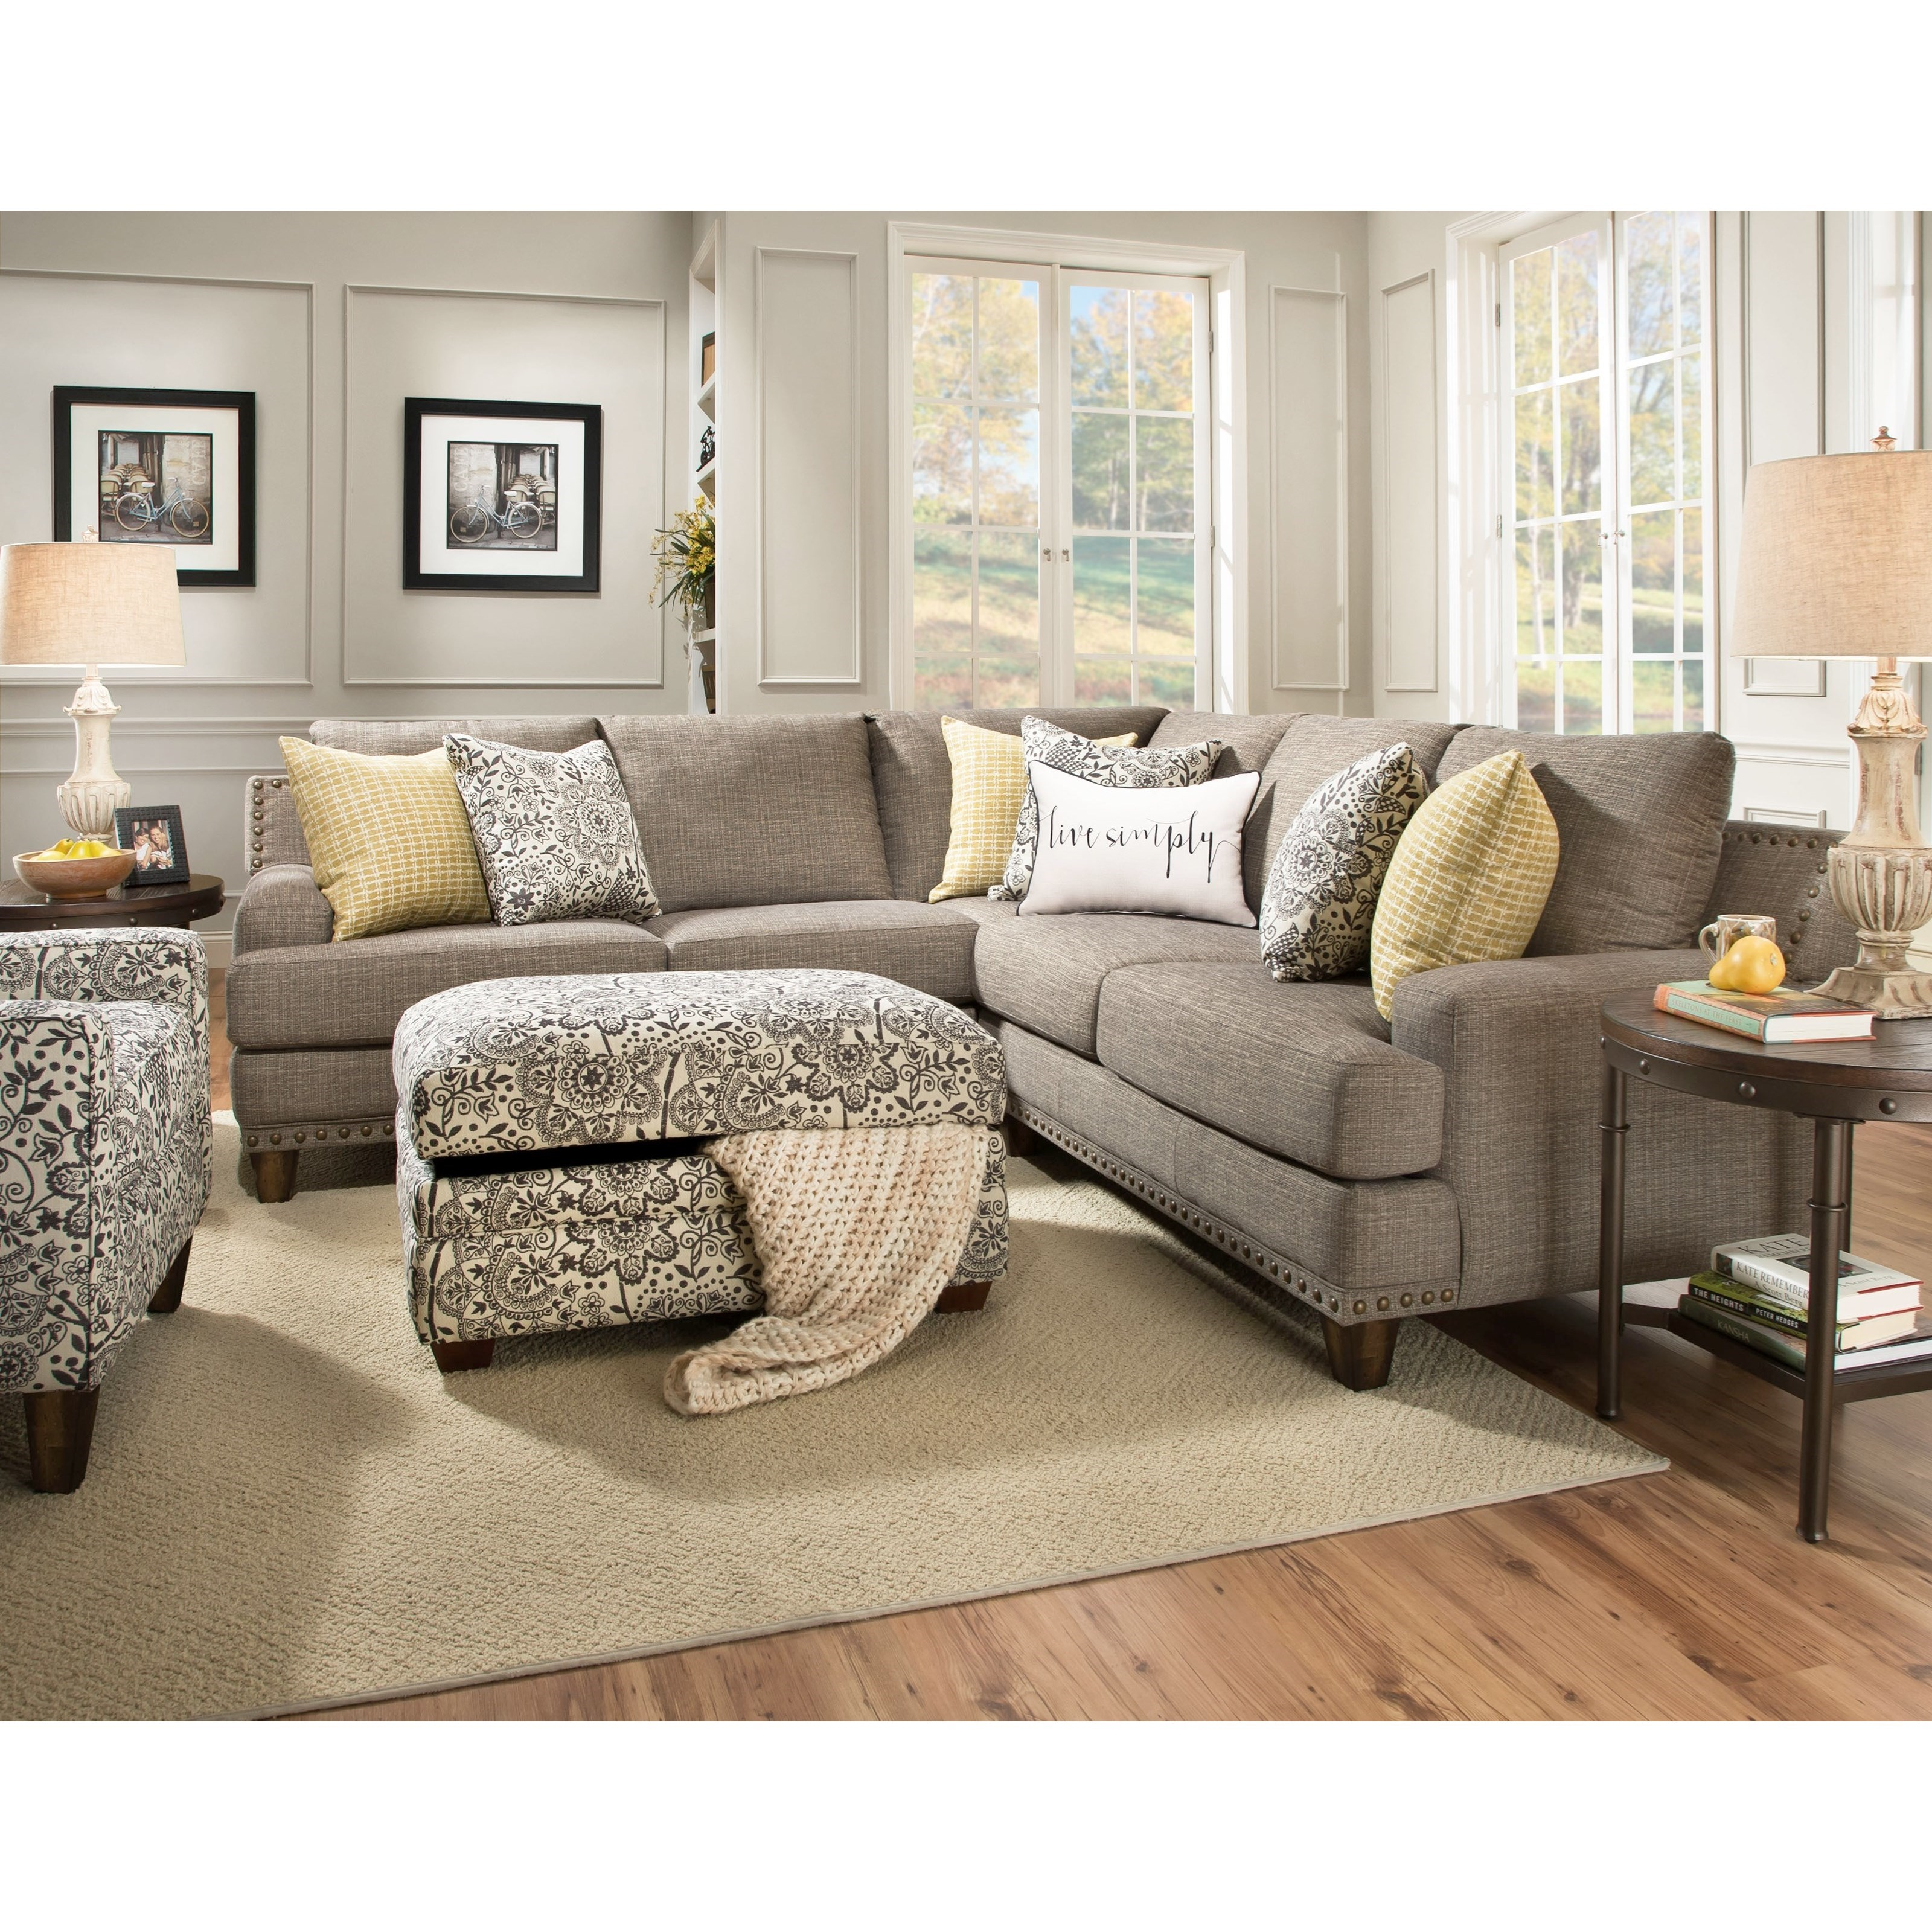 Sectional Sofa With Four Seats